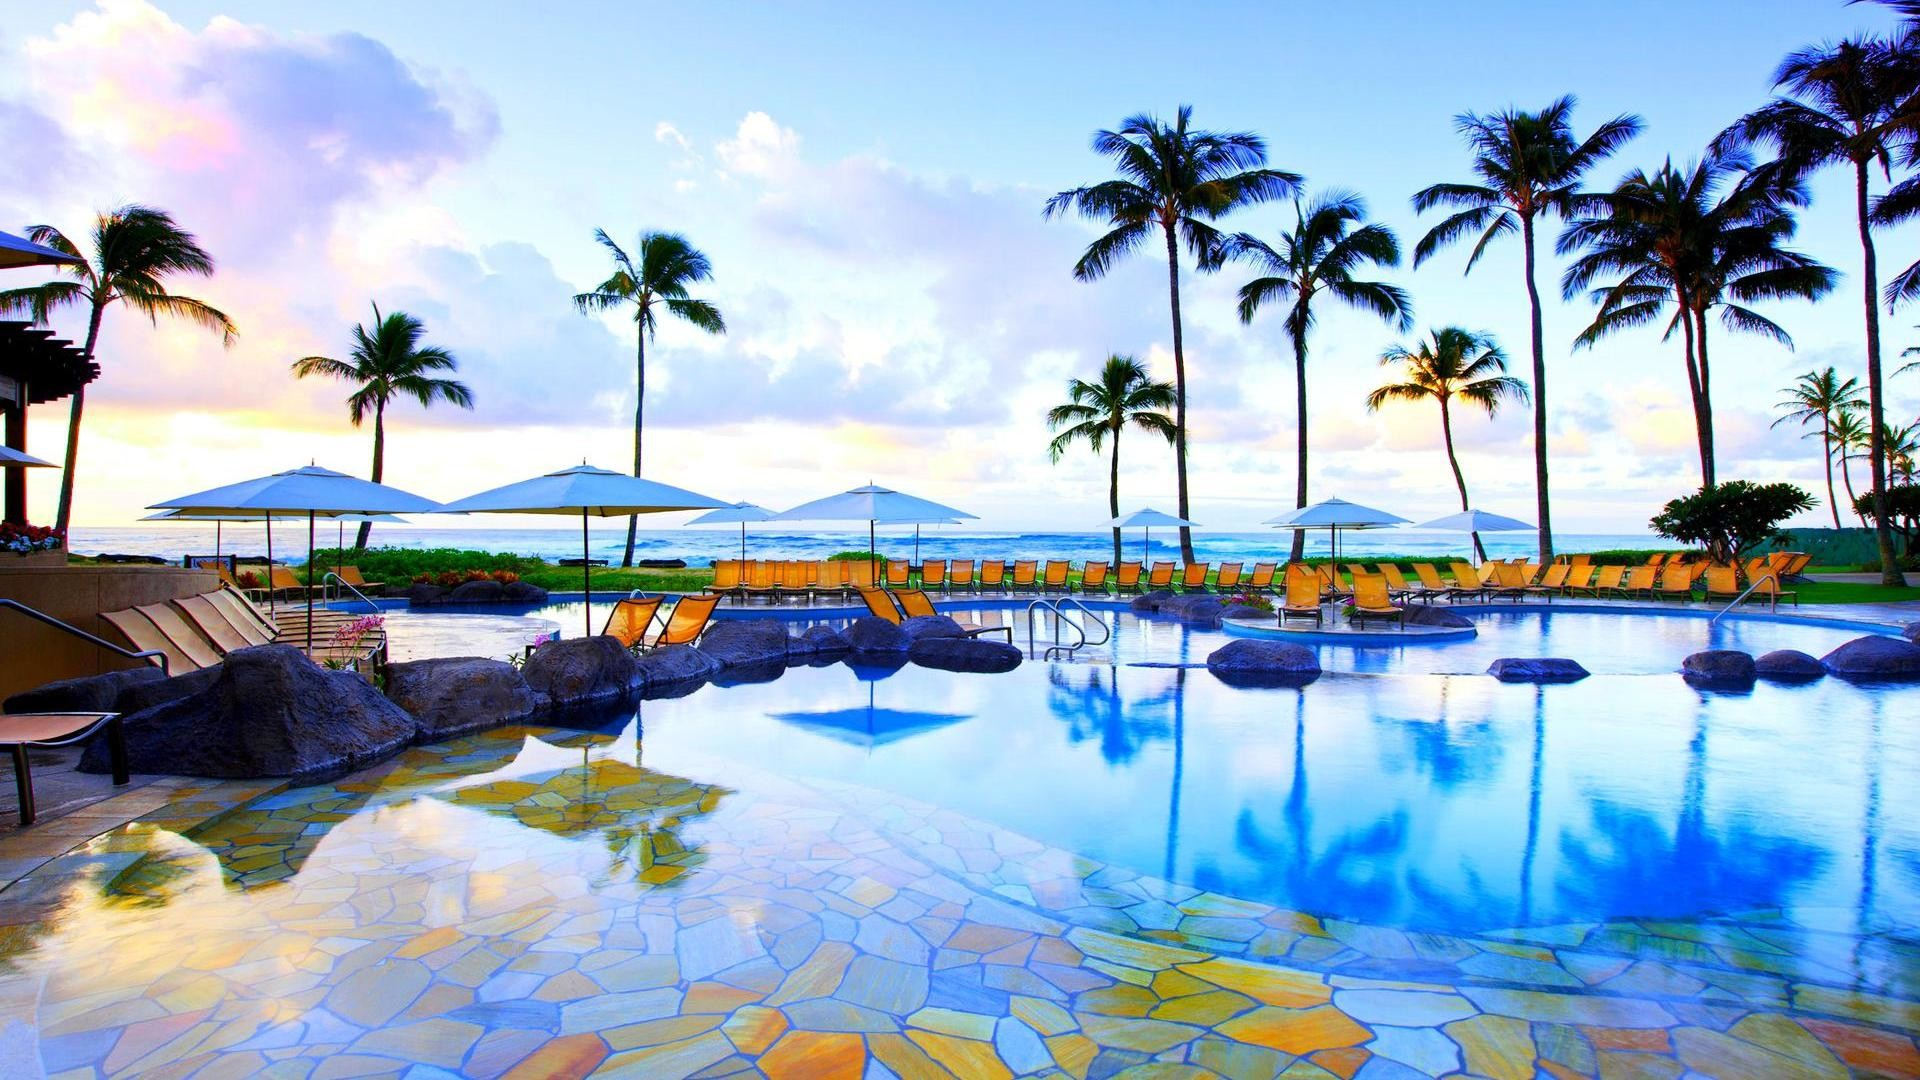 Hawaii Wallpapers Hd: Hawaii Desktop Backgrounds (63+ Images